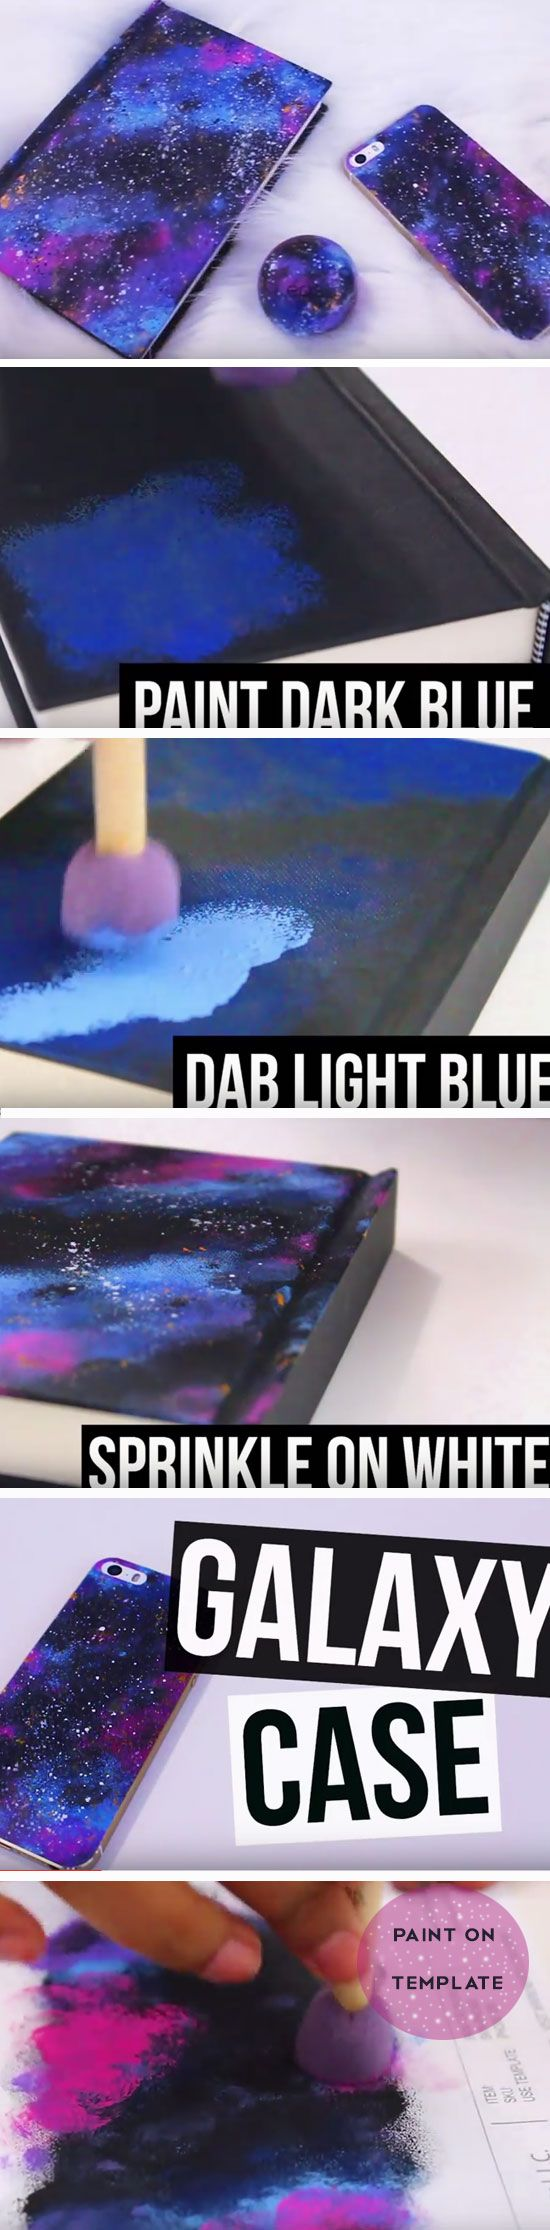 Galaxy Gift Set | DIY Craft Ideas for Kids to Make